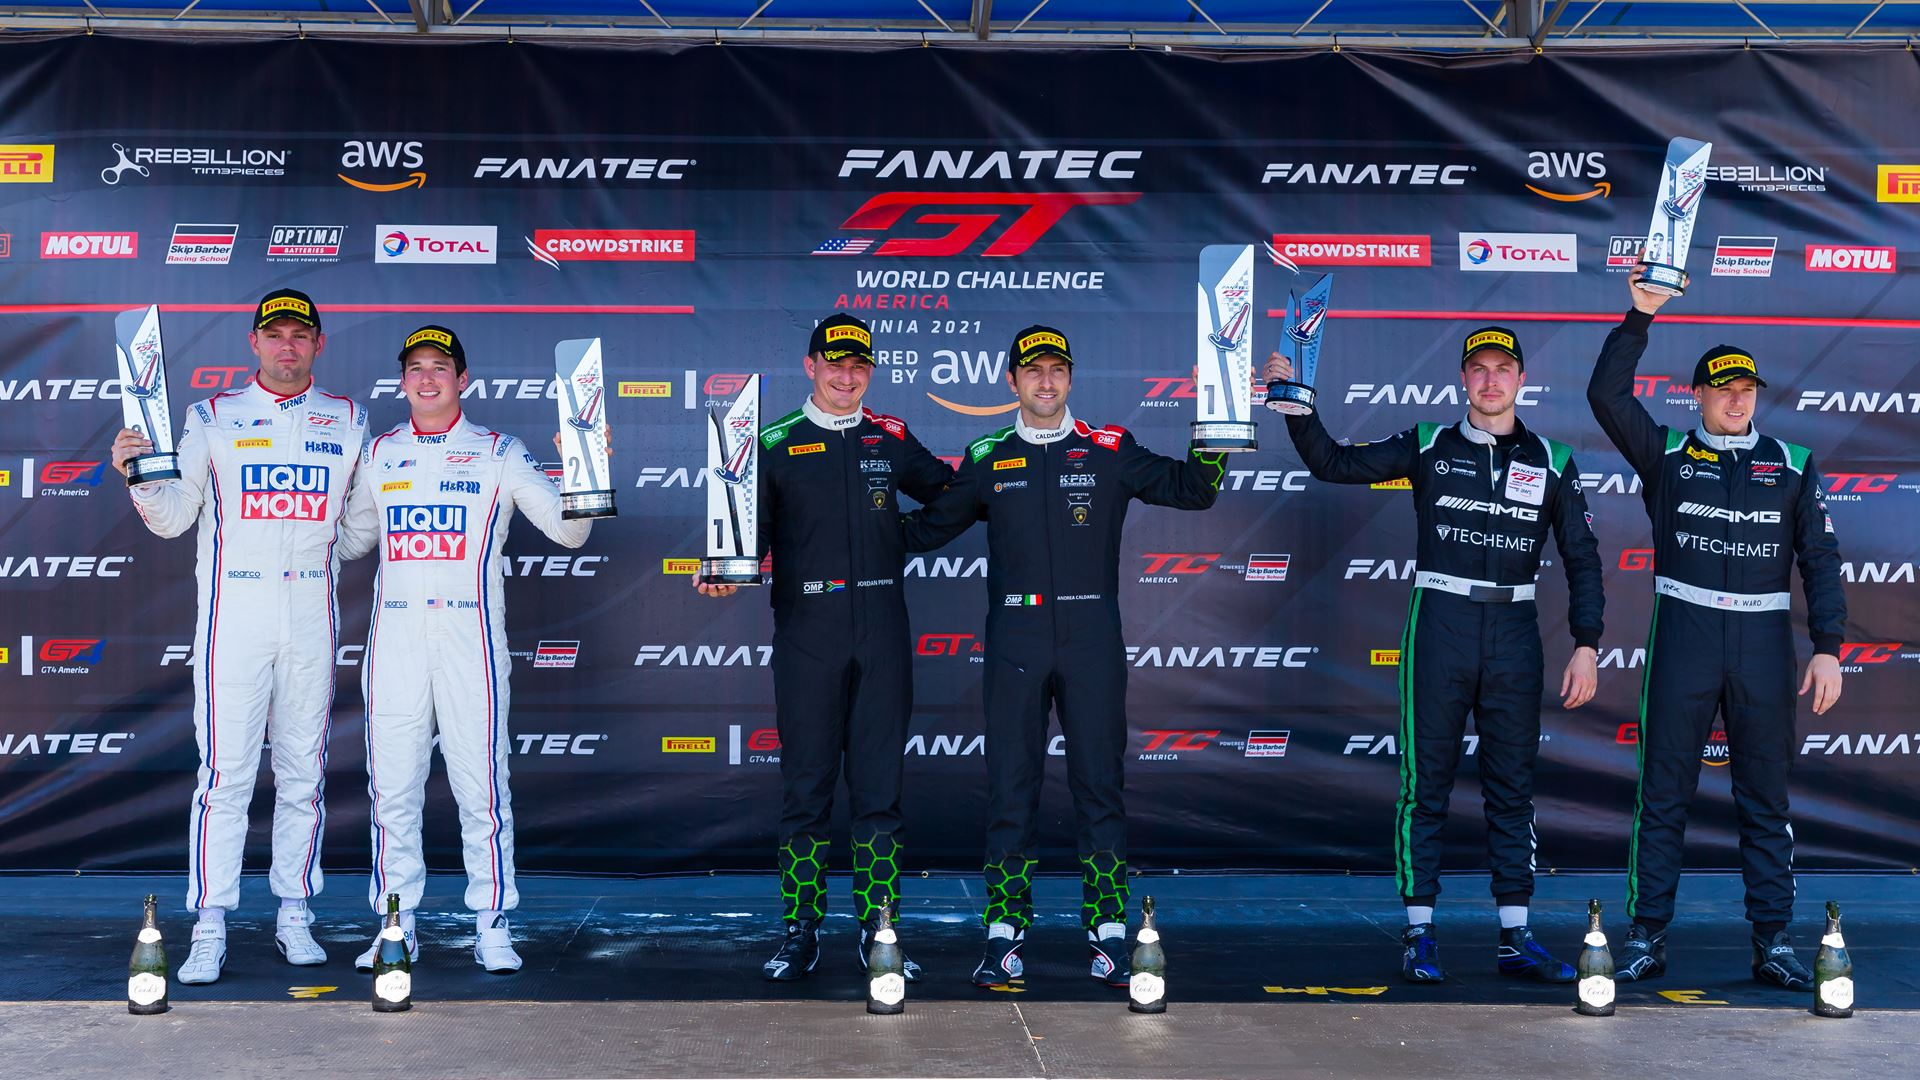 Lamborghini makes history with 100th GT3 victory thanks to another GT World Challenge America success - Image 6